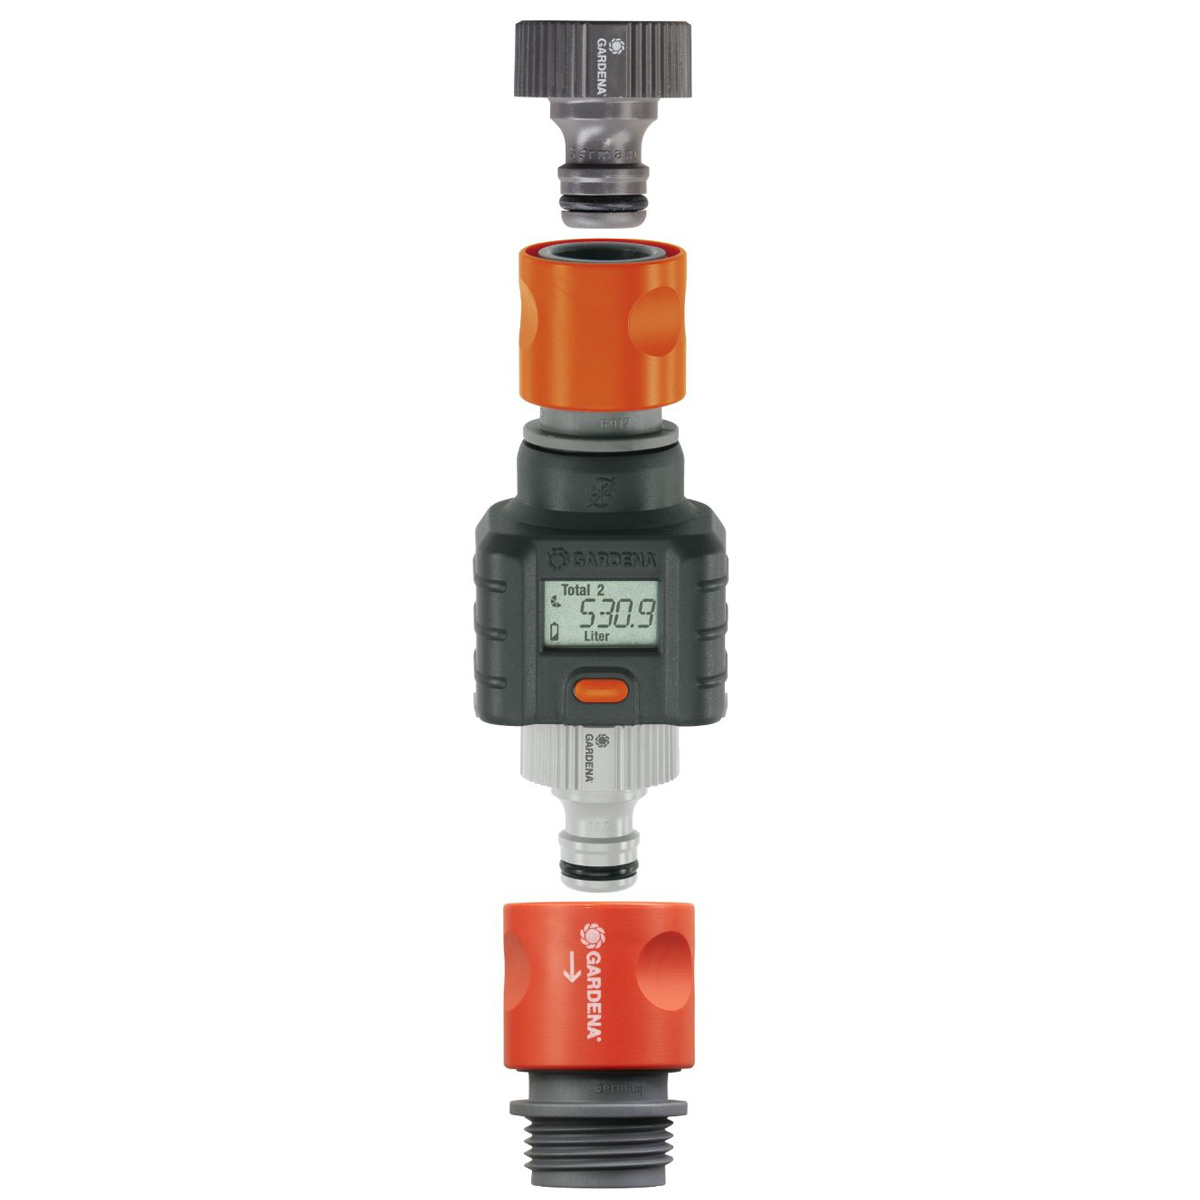 Water Flow Meter : Gardena garden hose water flow meter the green head